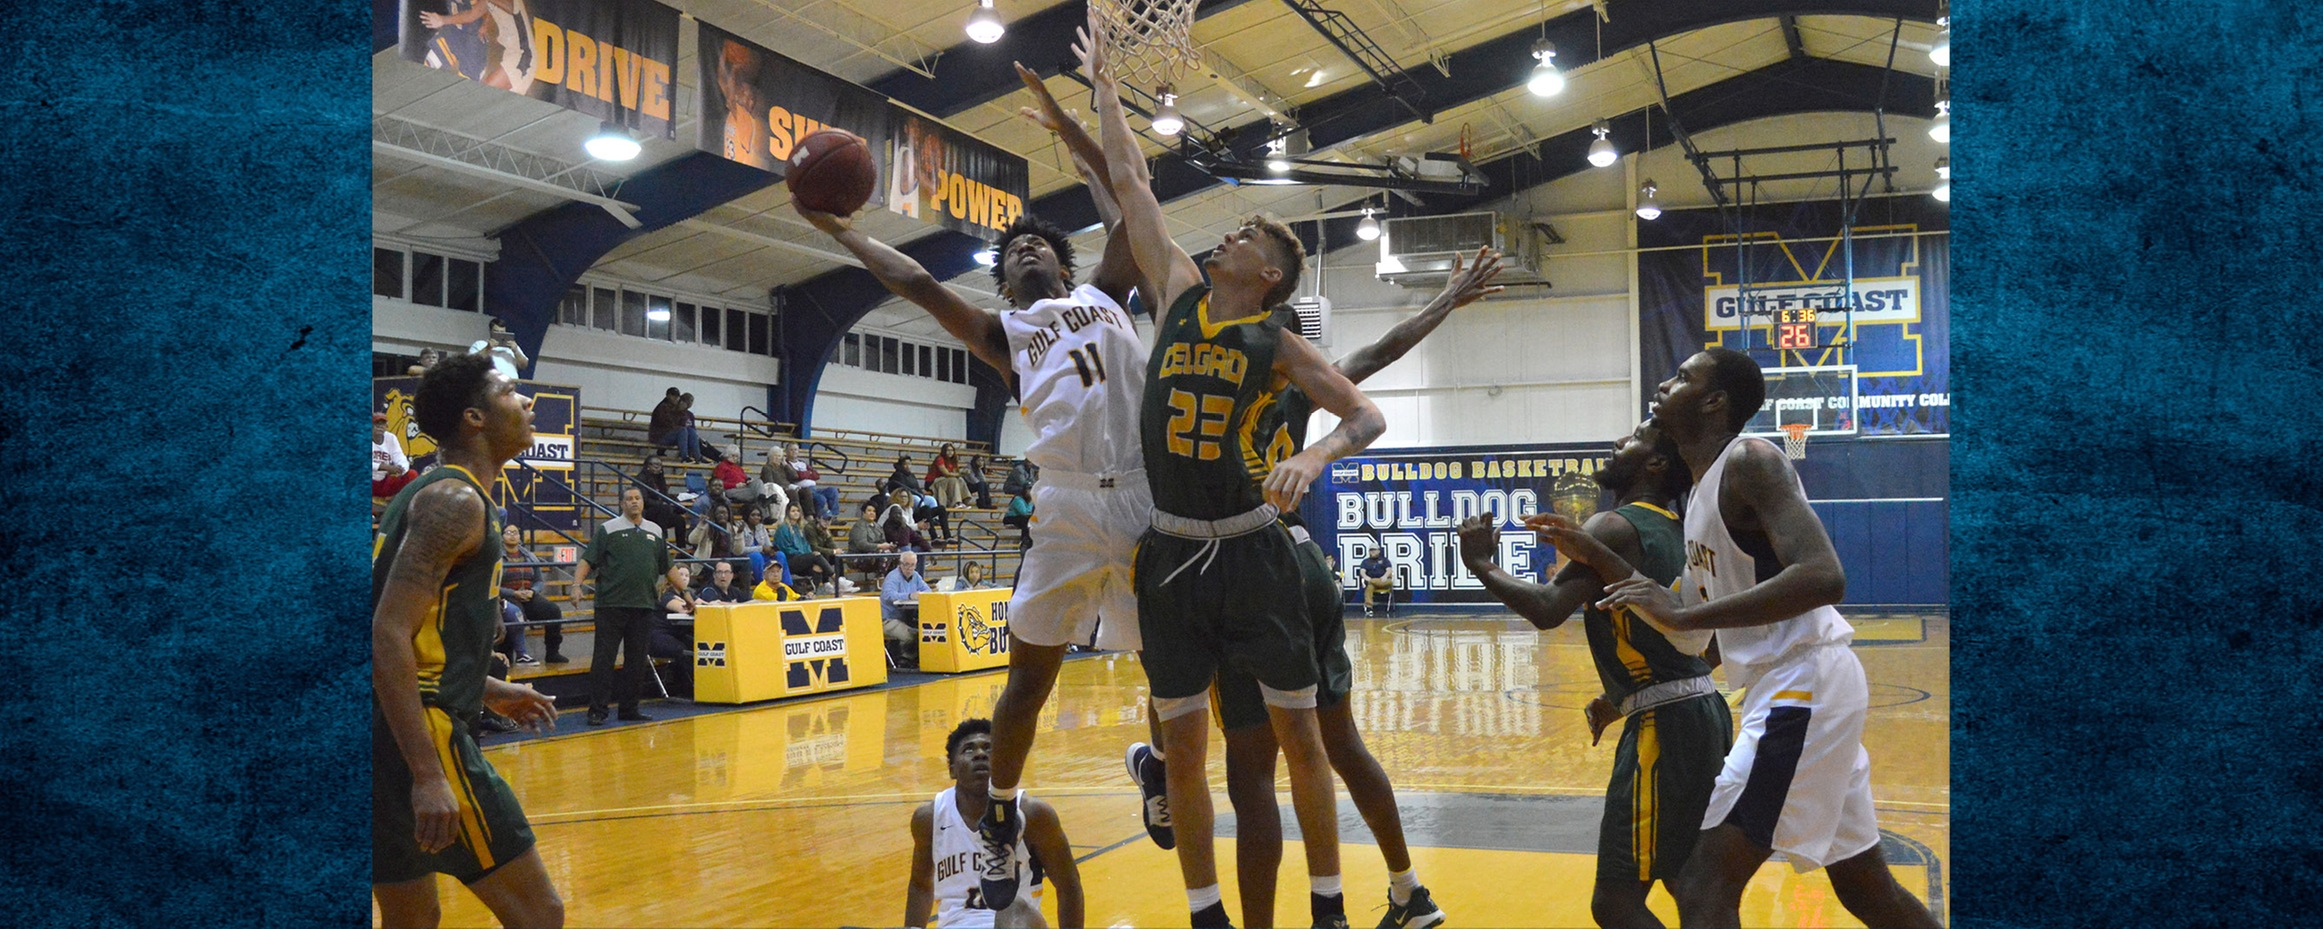 Gulf Coast leads big early, holds on late